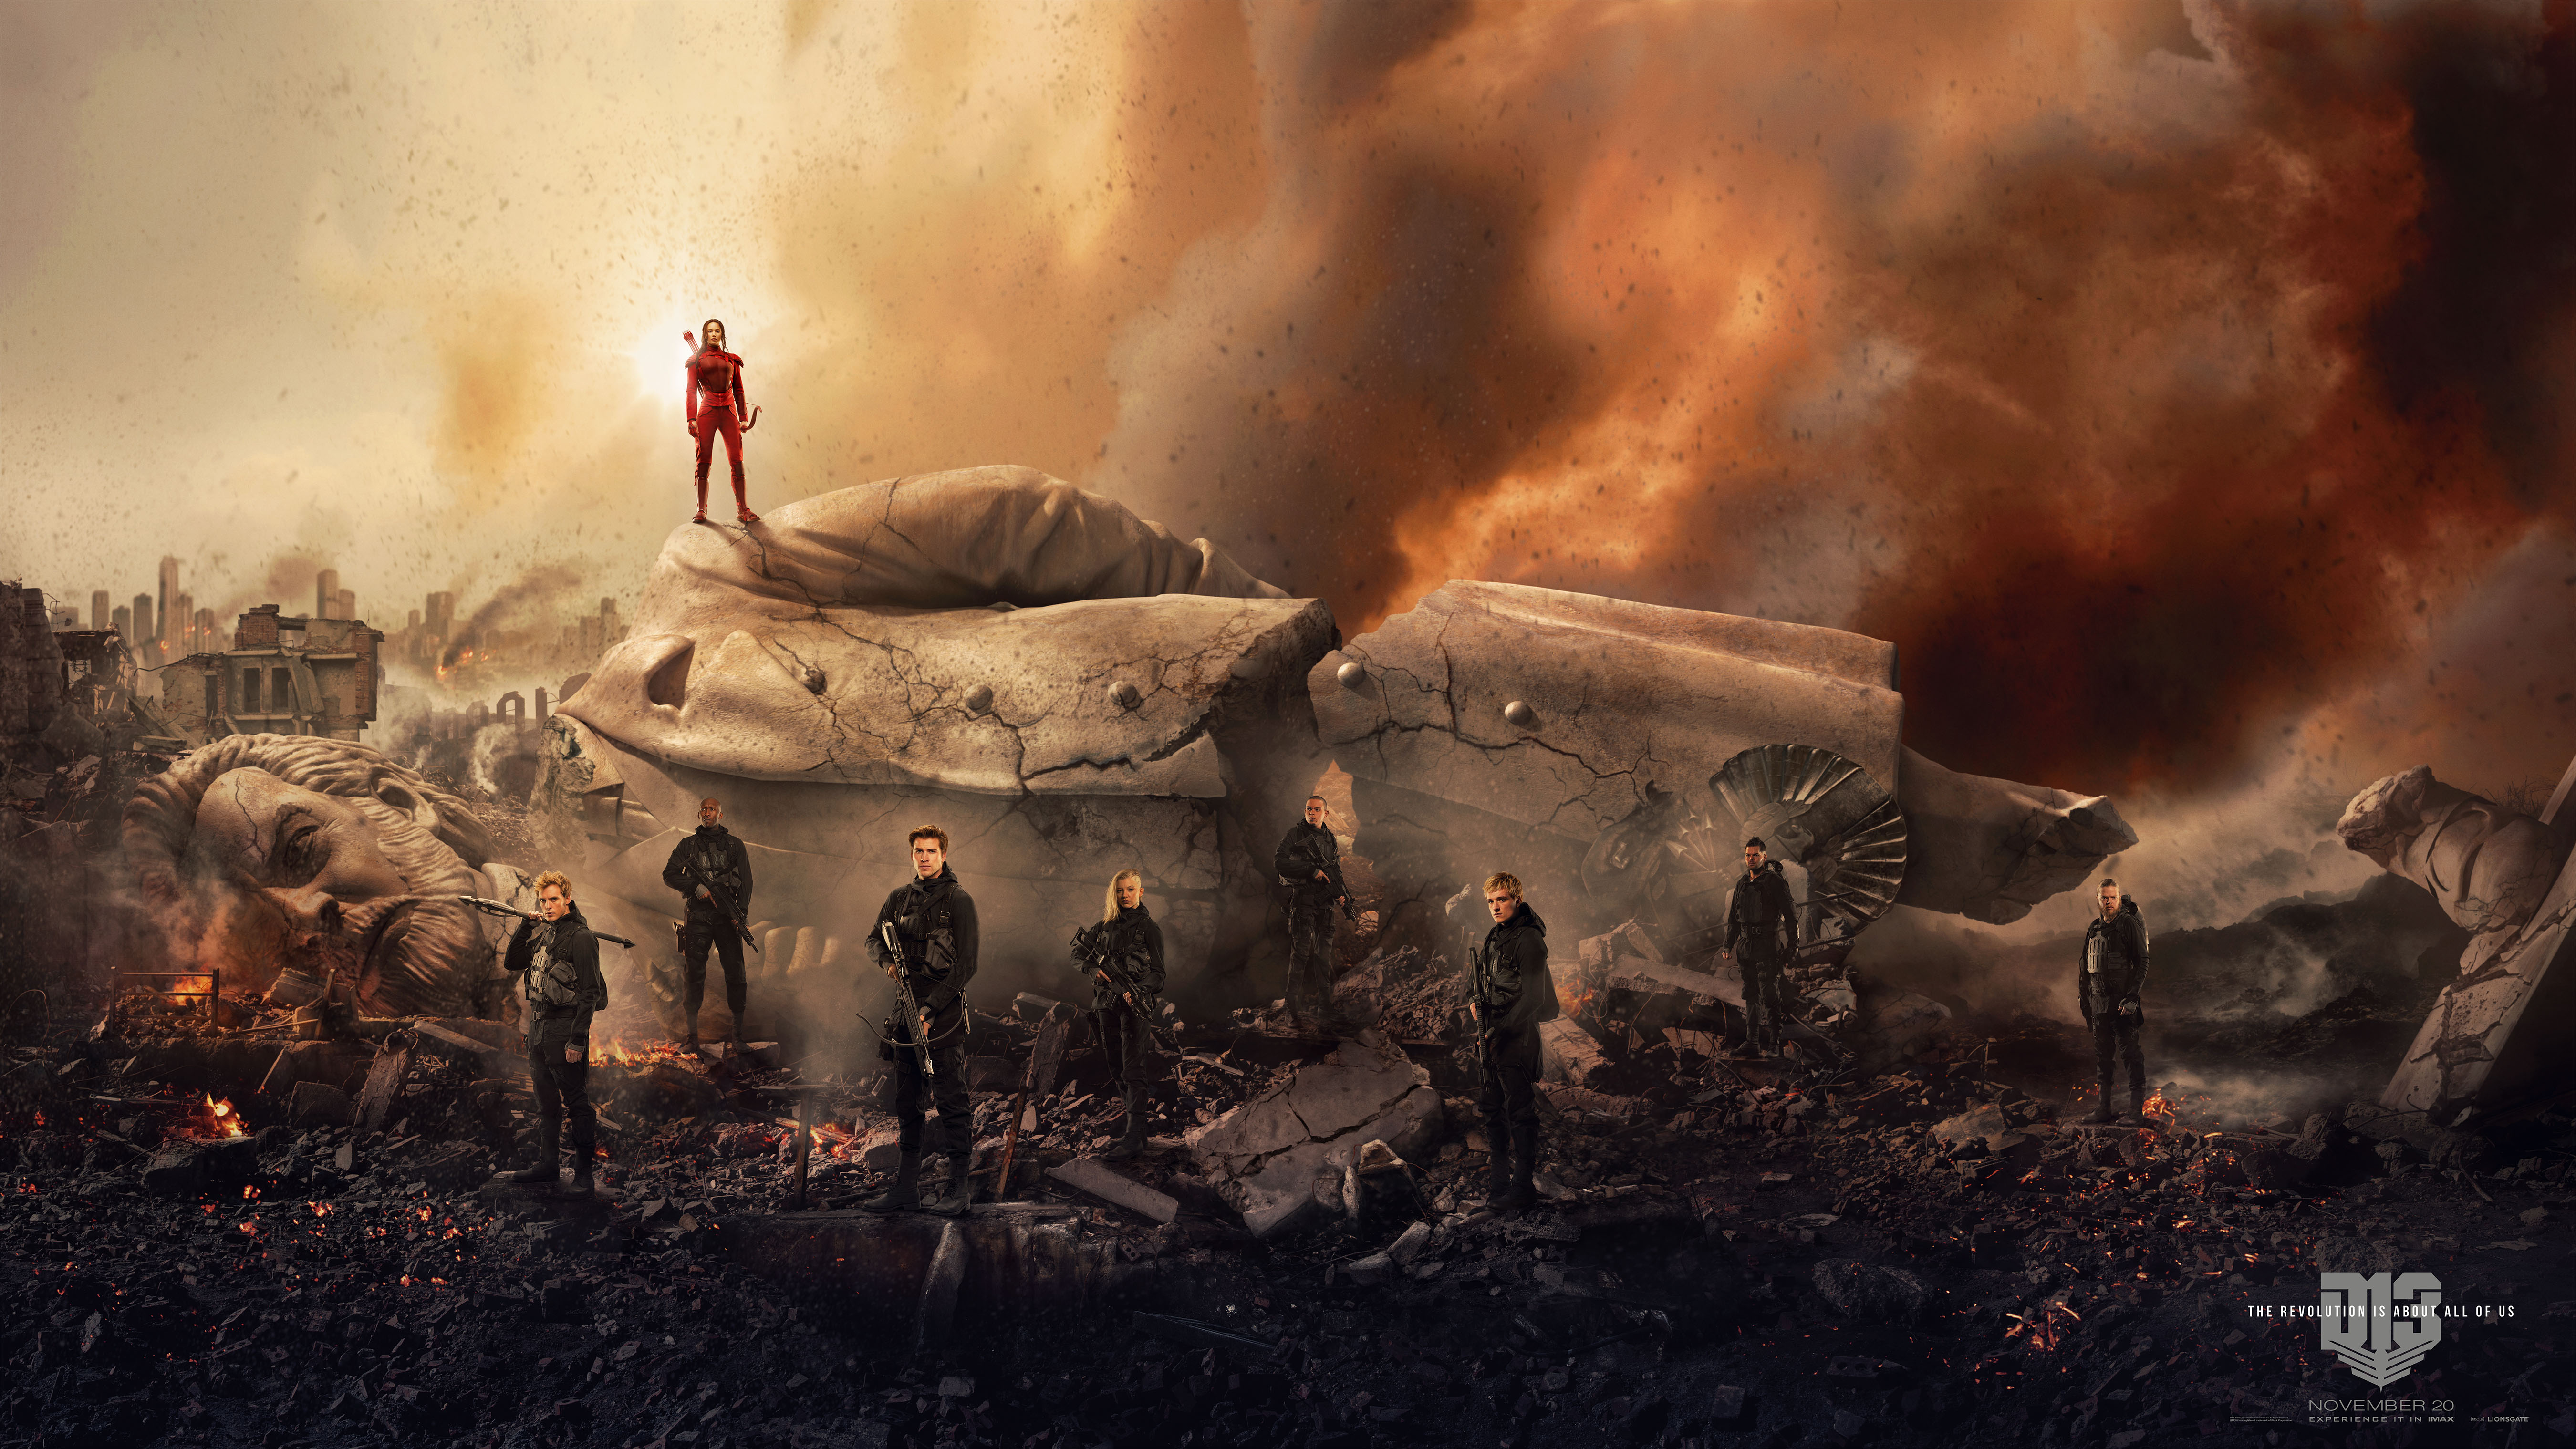 [OVER] Enter to win a MOCKINGJAY- PART 2 prize pack!